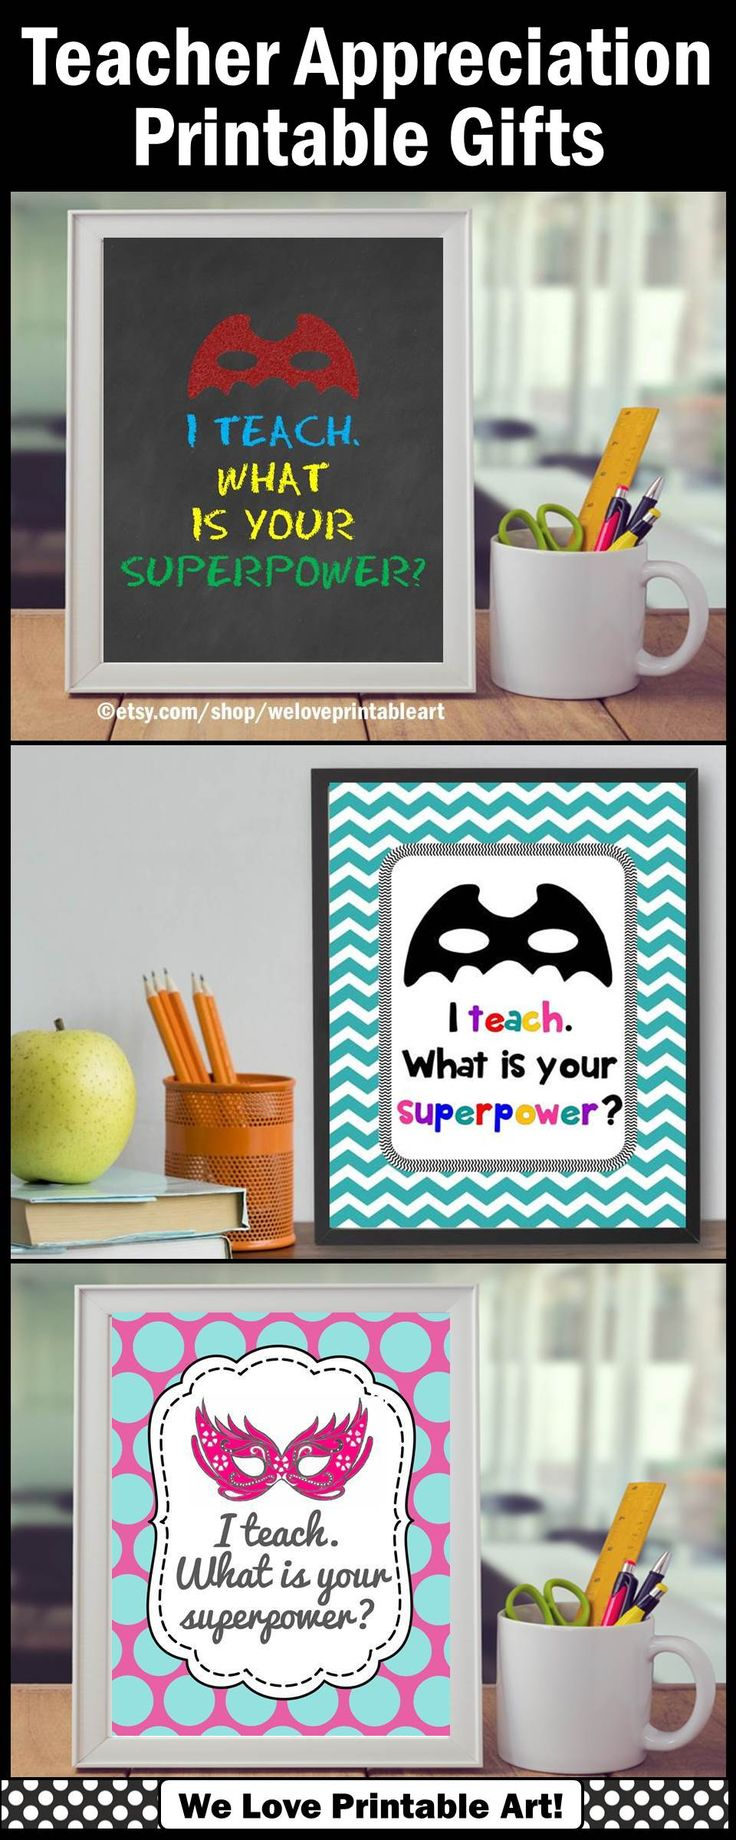 Teacher Gifts for Teacher Appreciation Week:  These INSTANT DOWNLOAD posters make great gifts...so quick and easy!  You may print as many as you need for personal, gift giving use only.  You may print in 8x10, 16x20 or 24x30.  Pop them in a frame for a special gift teachers will love, or print and laminate in large poster size for a huge impact!  Your favorite teacher will love it!  https://www.etsy.com/shop/WeLovePrintableArt?ref=hdr_shop_menu&search_query=superpower